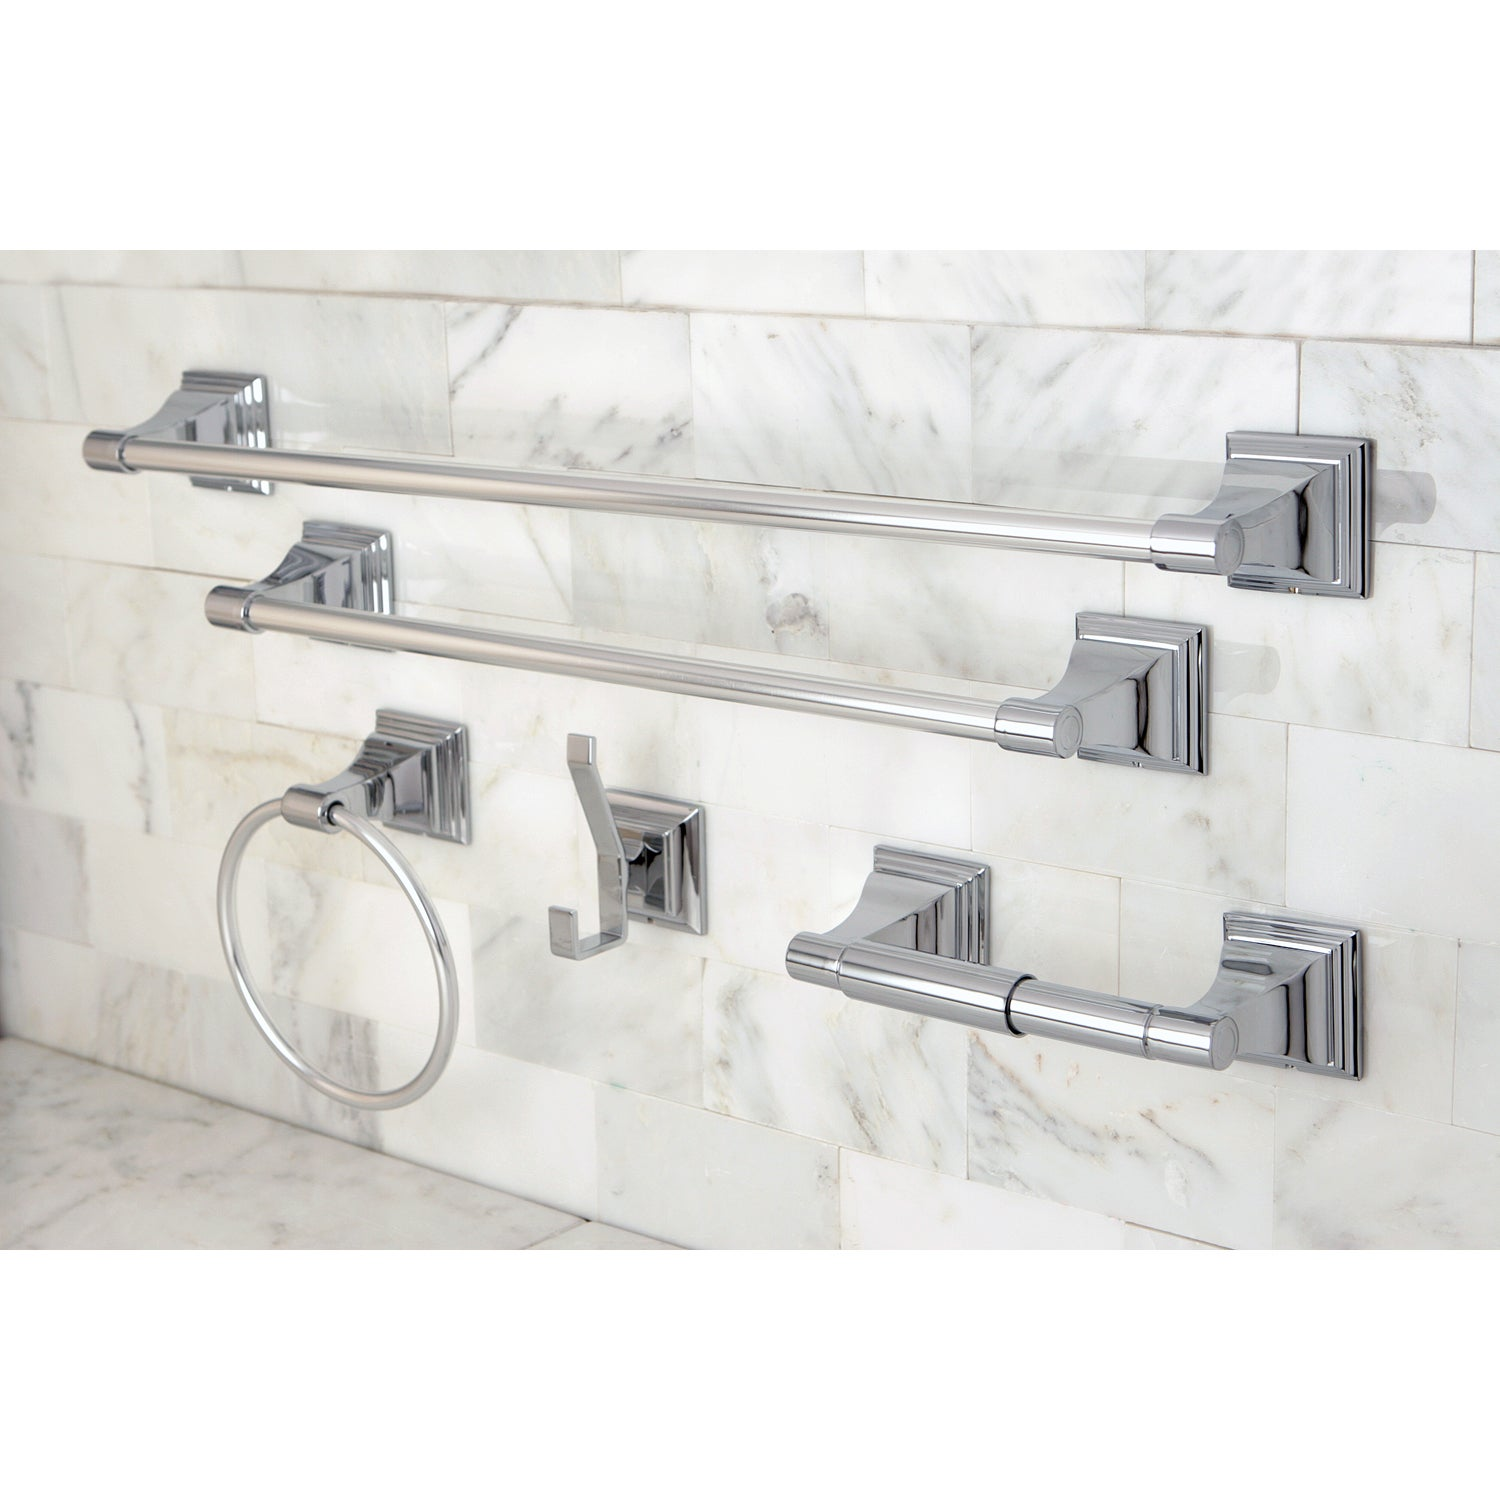 Chrome 5 piece bathroom accessory set free shipping for Cream bathroom accessories set